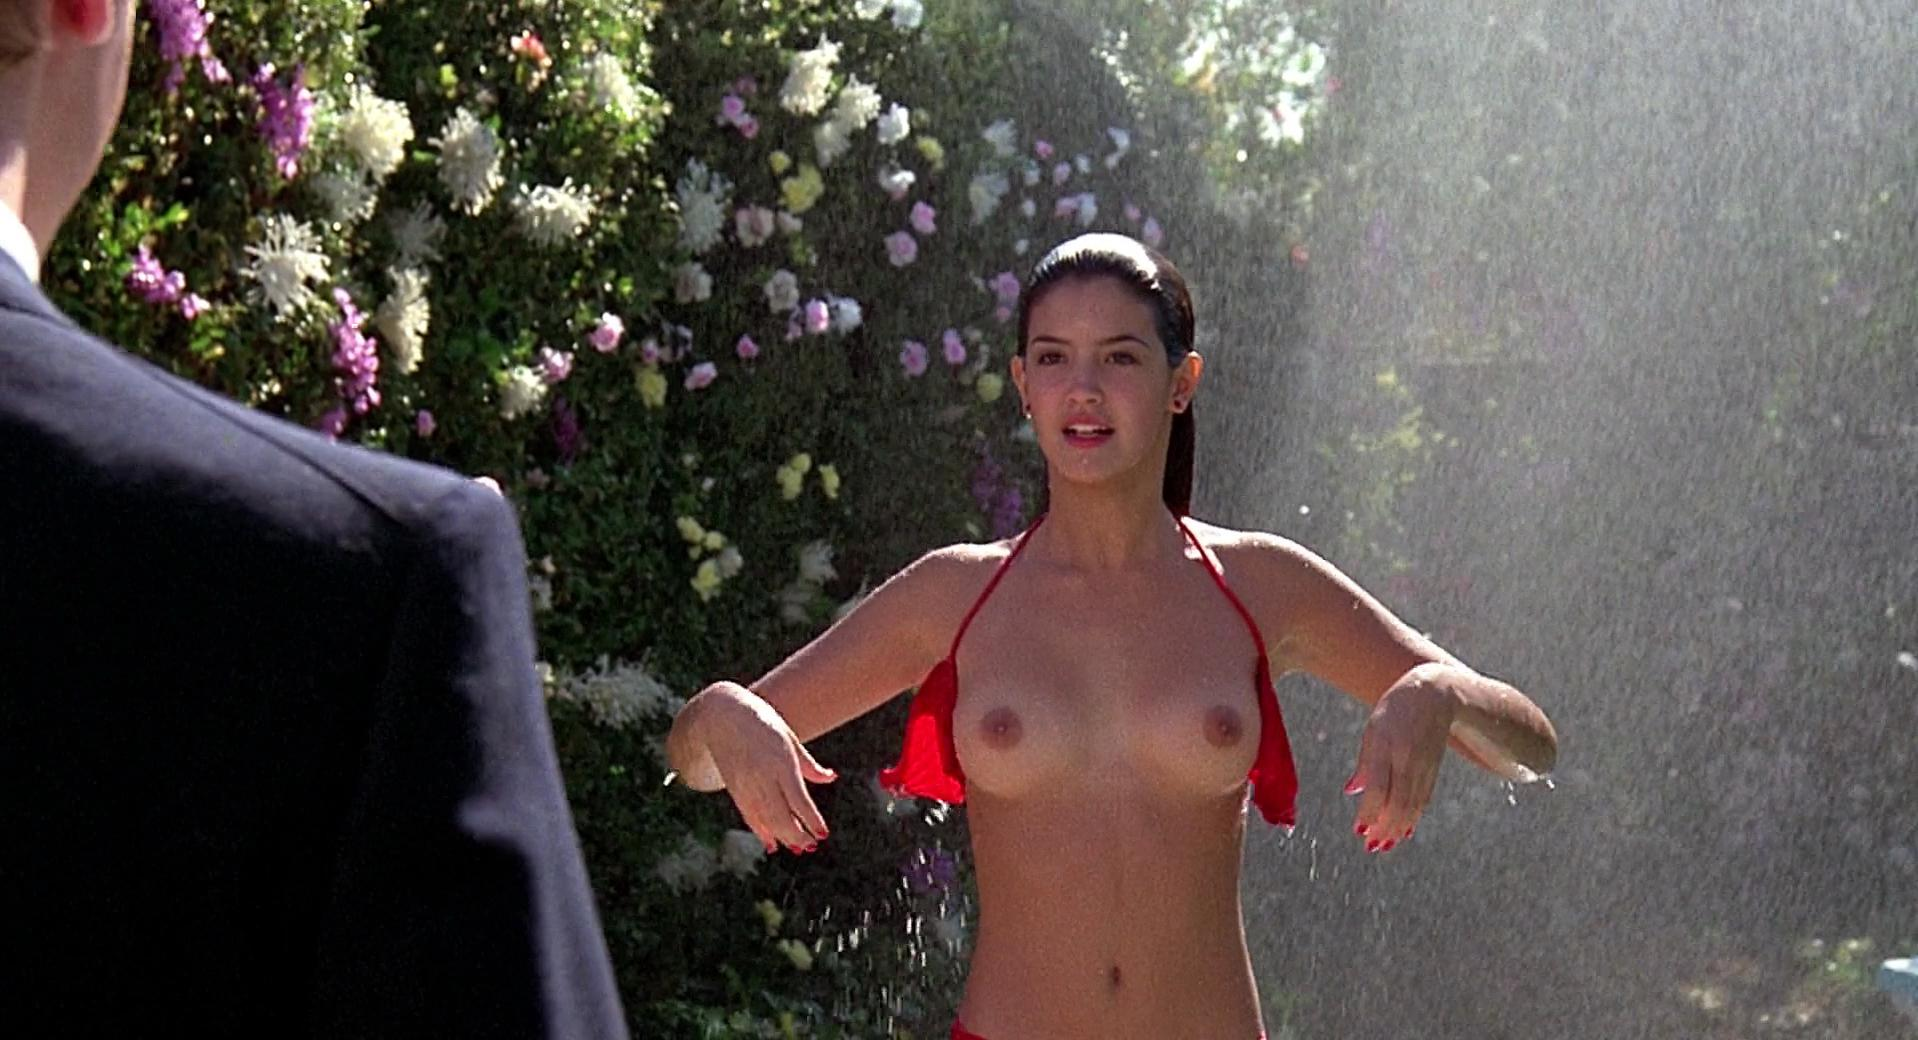 Phoebe Cates Nude Fast Times At Ridgemont High 1982